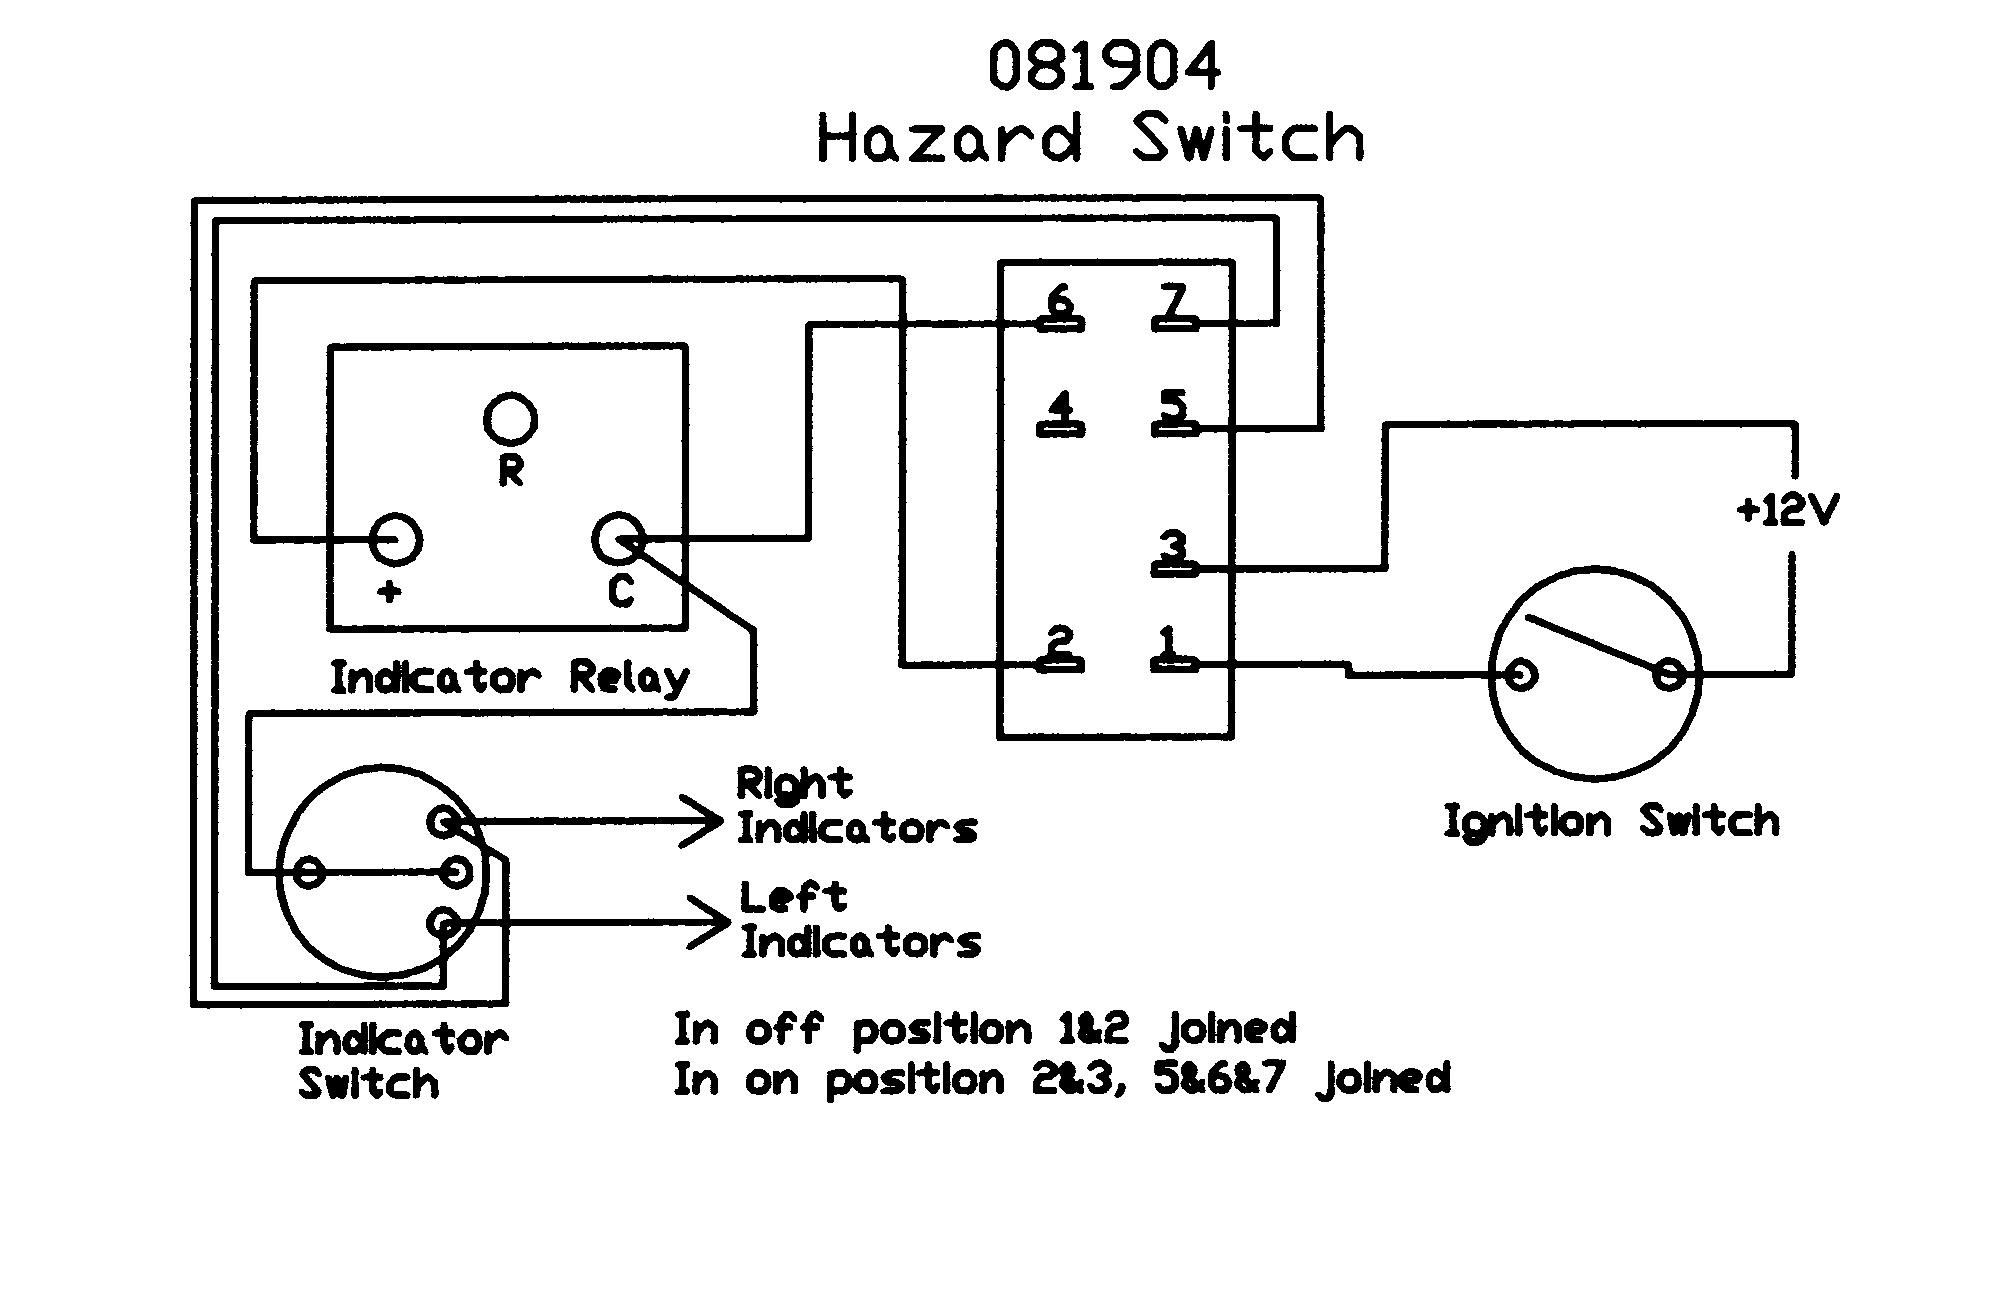 Hazard switch rocker 081904 wiring diagram asfbconference2016 Image collections